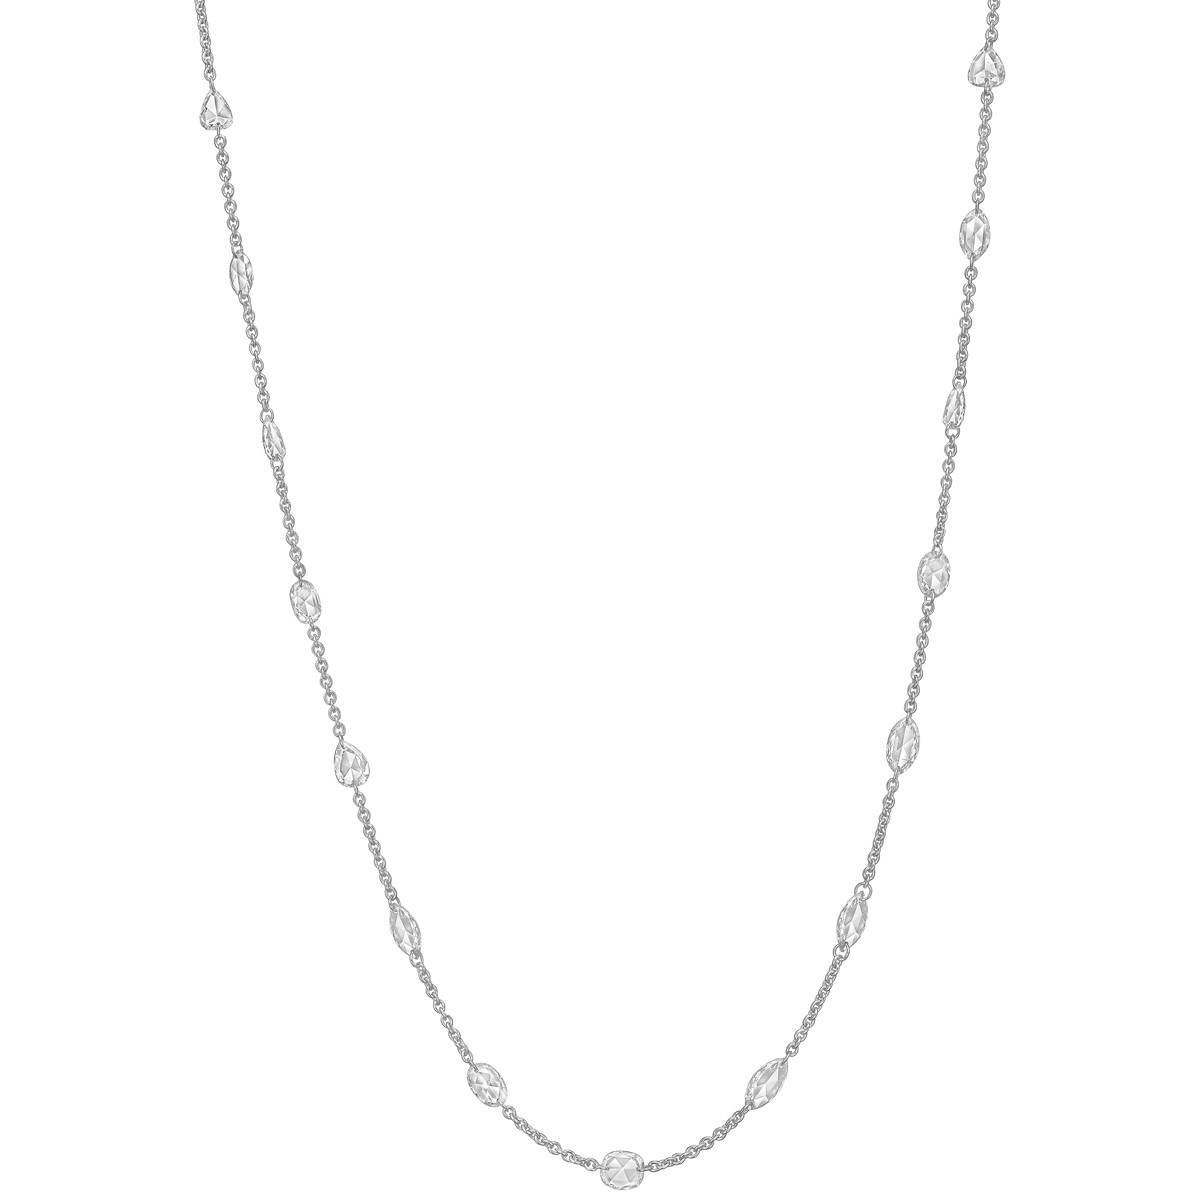 Rose-Cut Diamond Chain Necklace (2.27 ct tw)